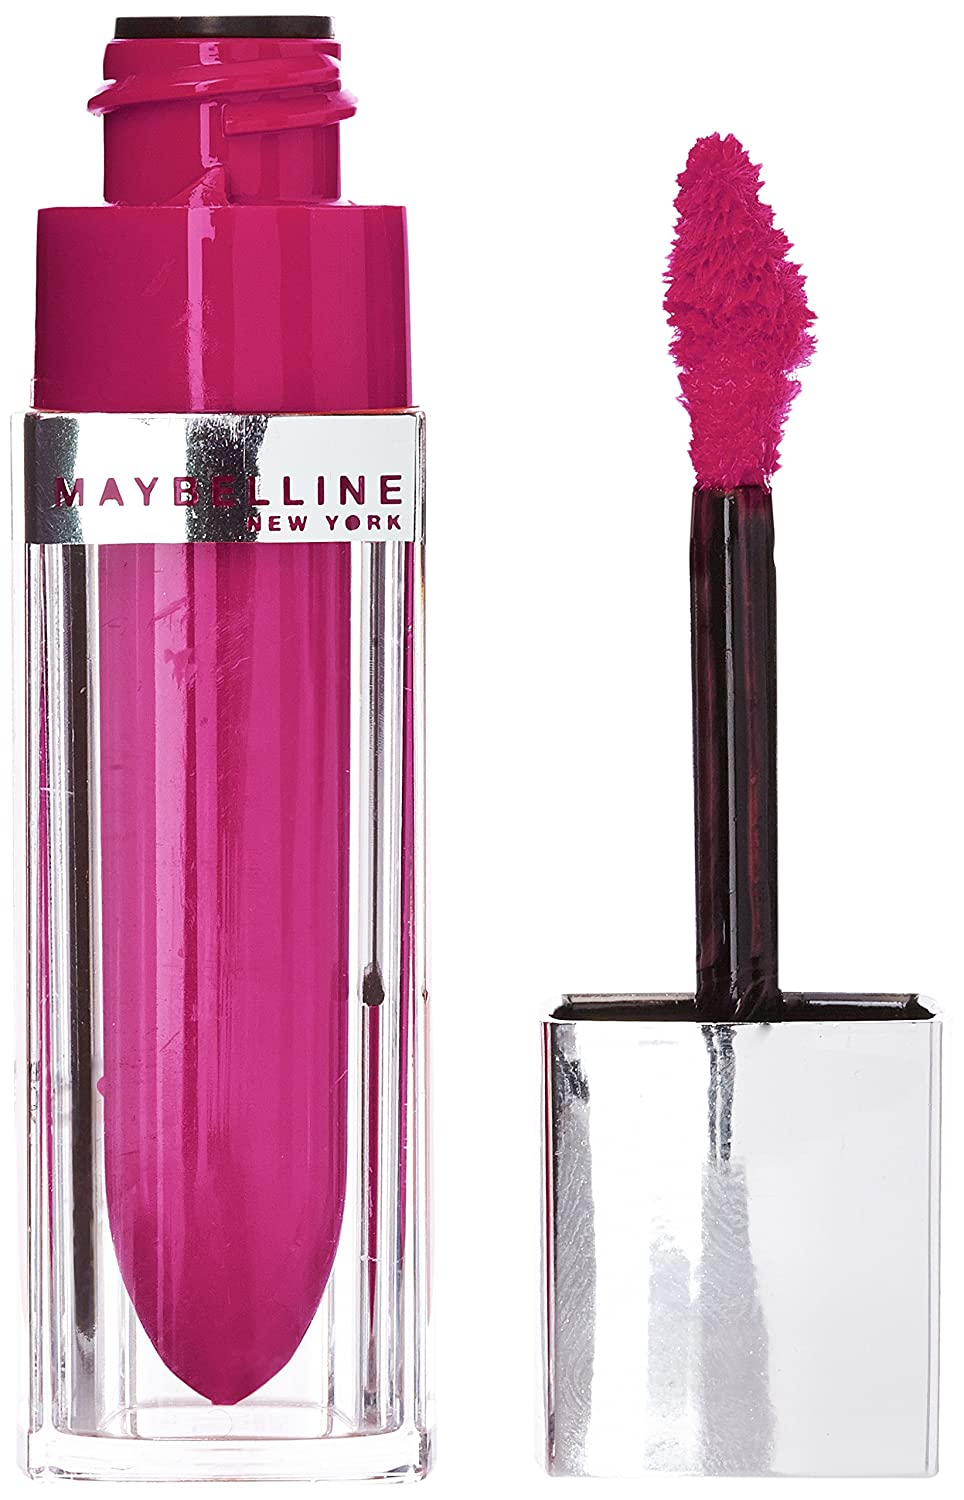 Maybelline New York Color Elixir by Color Sensational - Laque à lèvres Violet - 135 raspberry rhapsody GEMEY MAYBELLINE